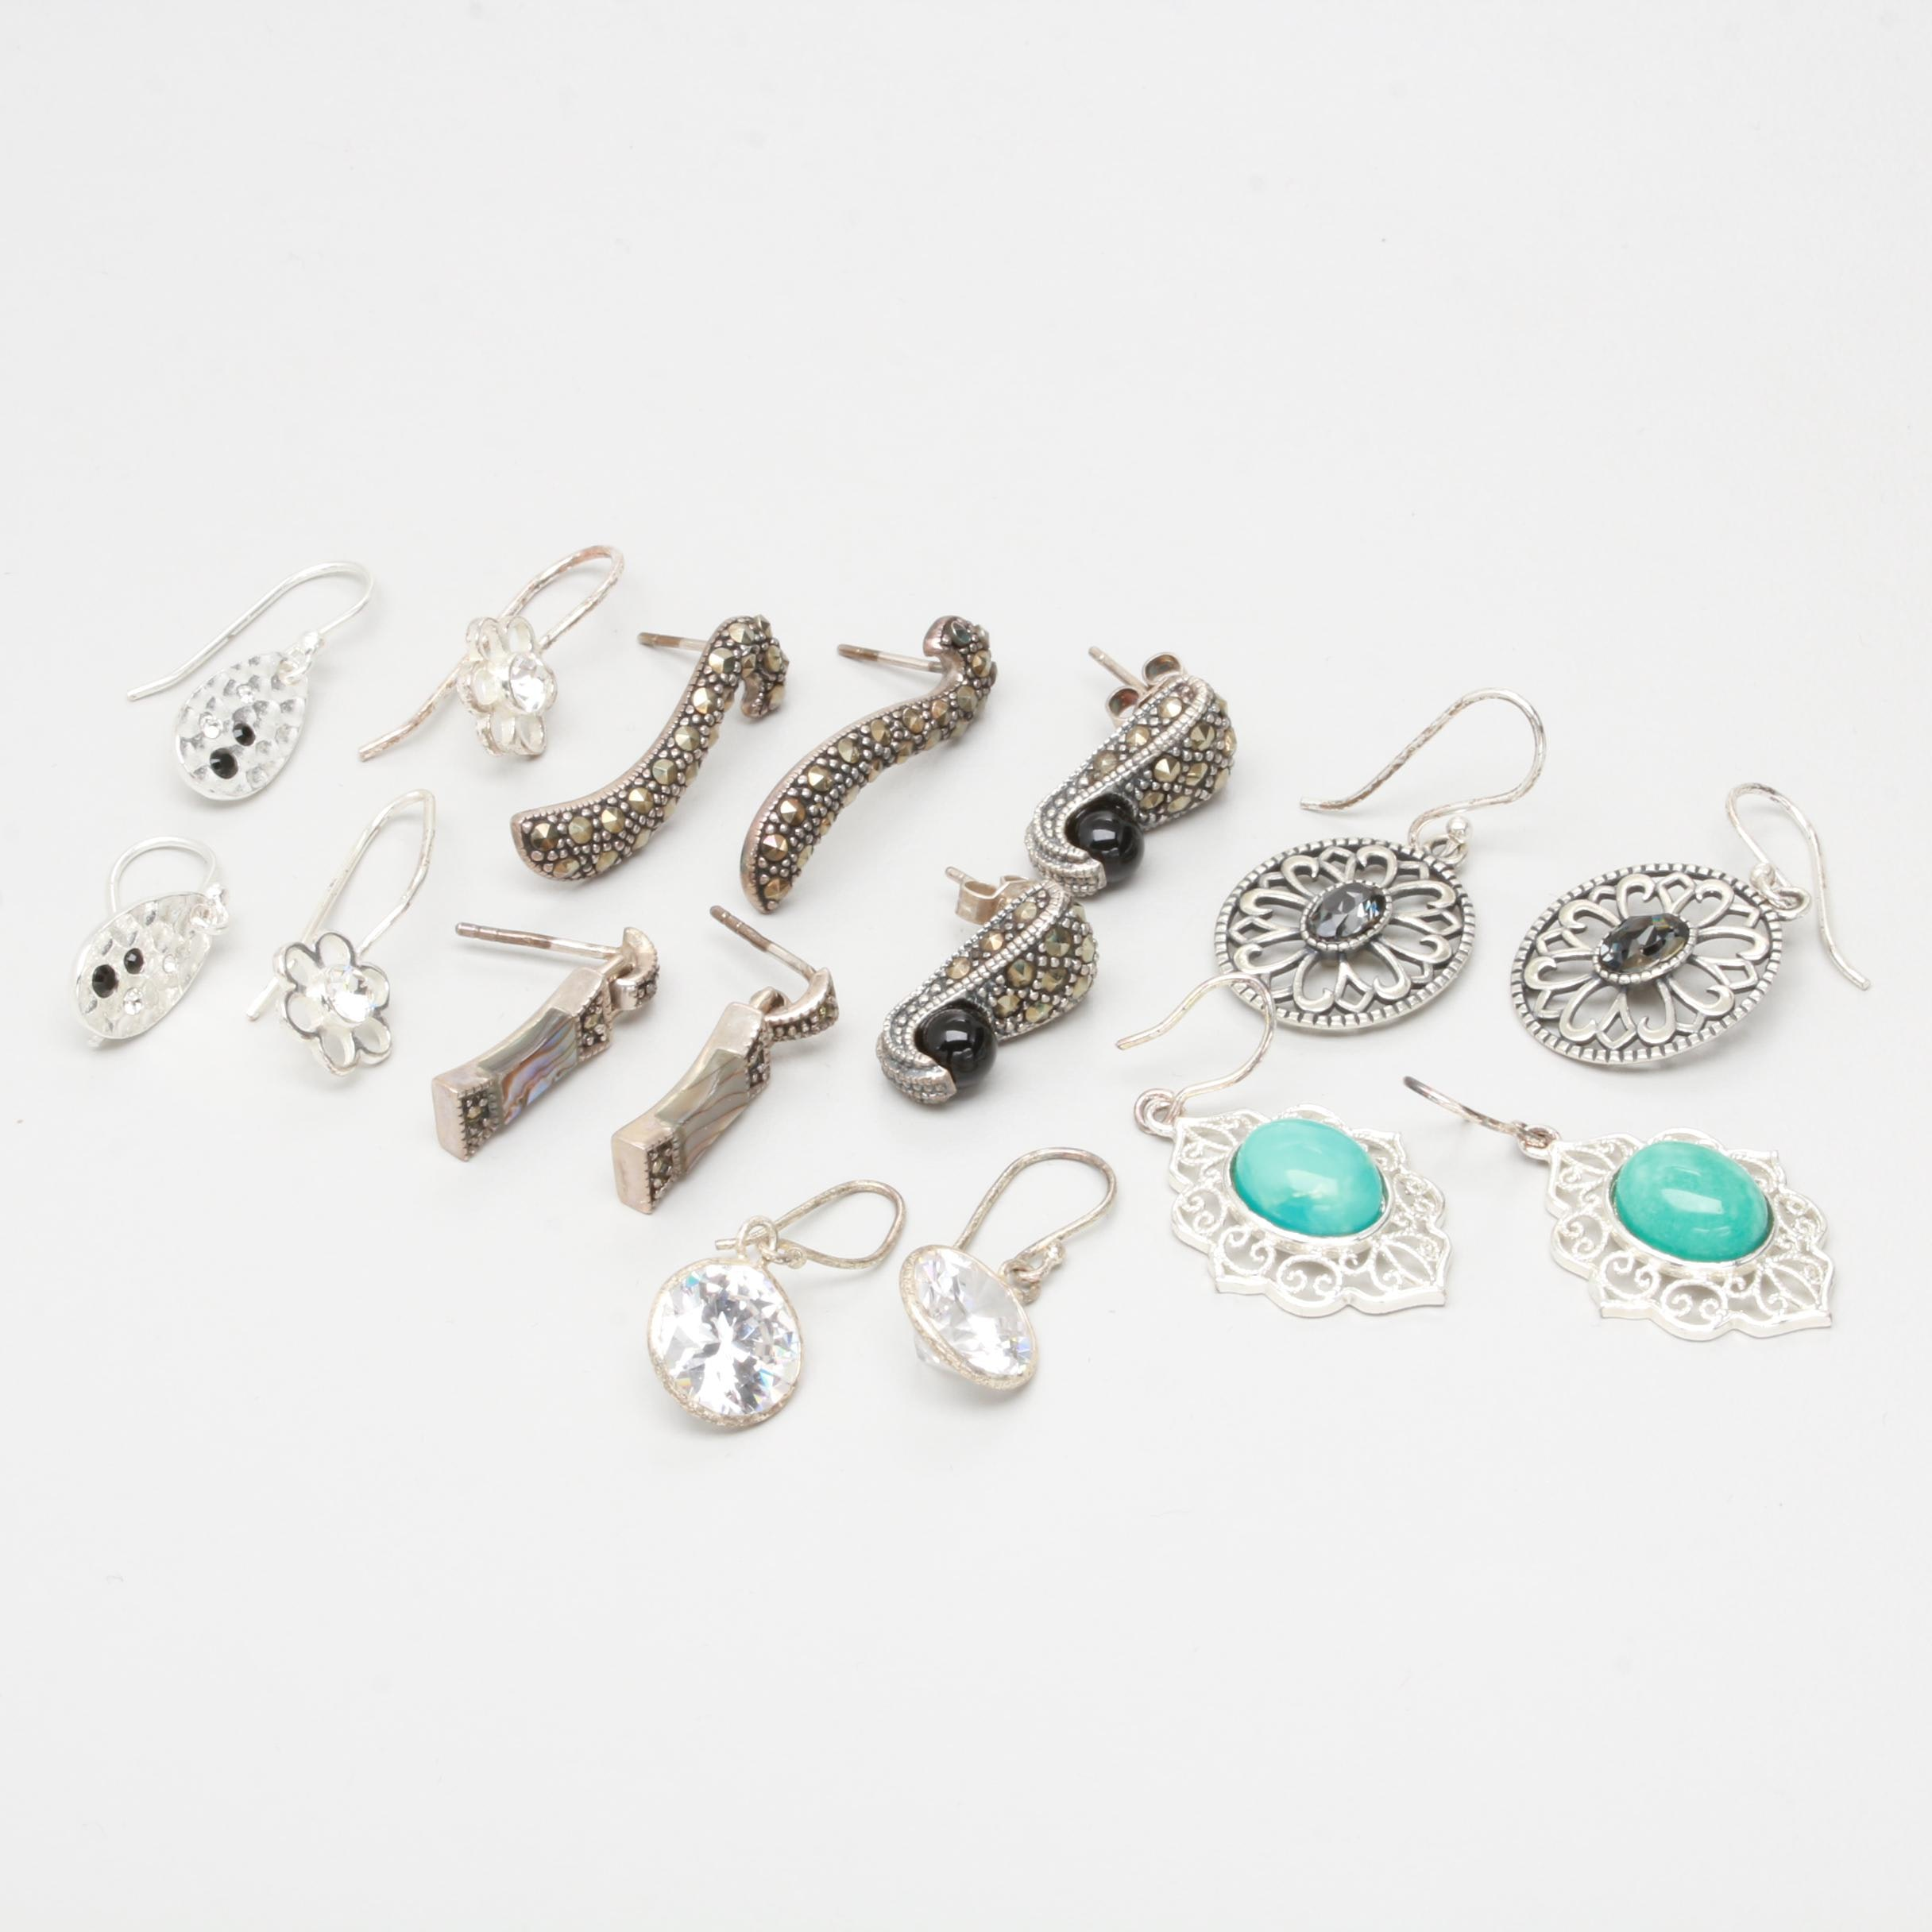 Sterling Silver Earring Assortment with Cubic Zirconia, Marcasite, and Abalone